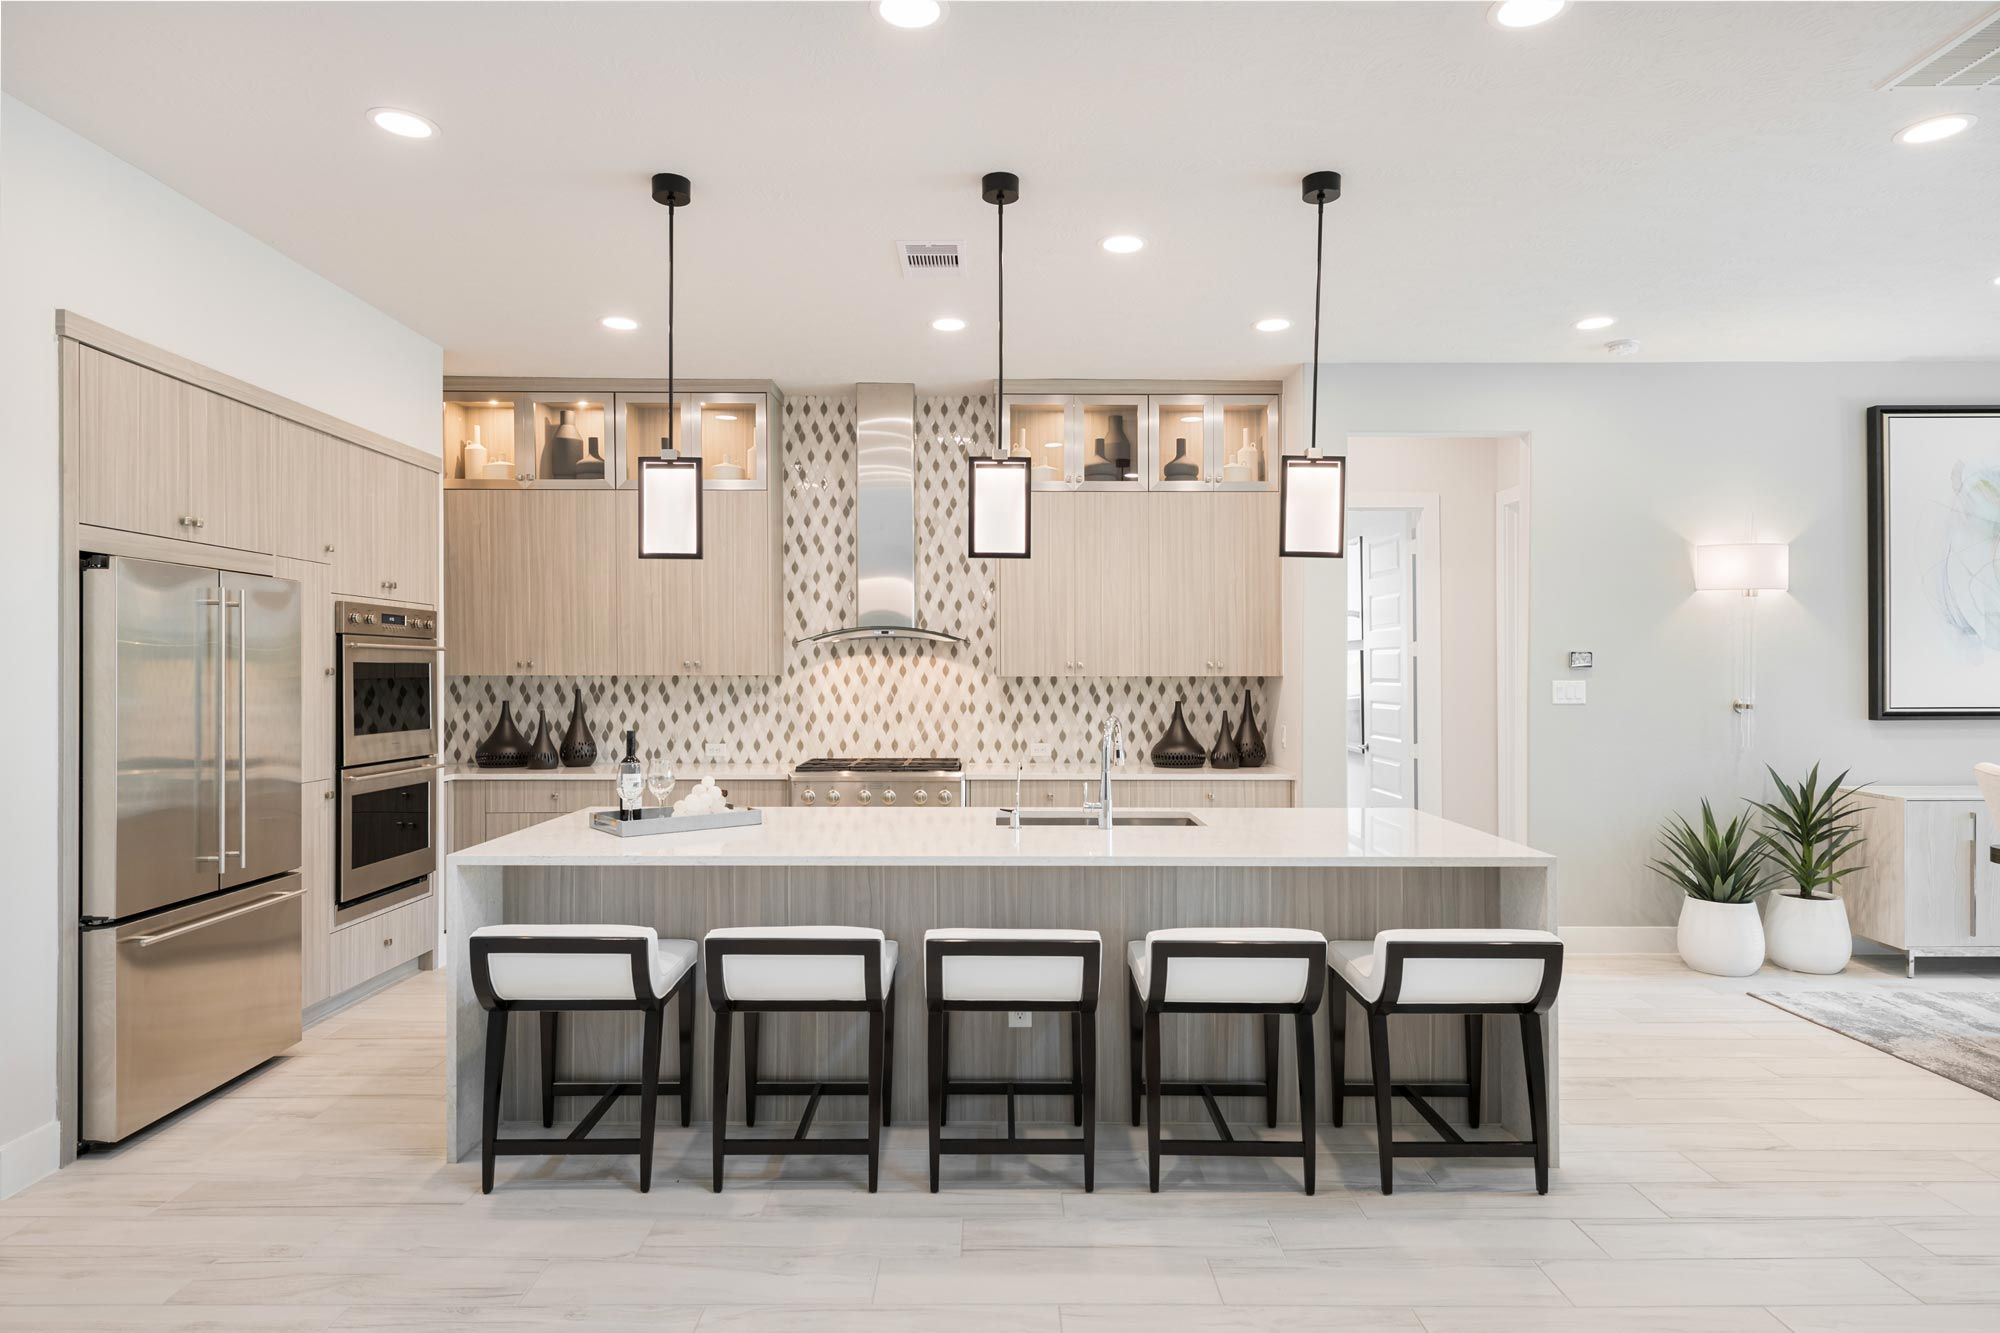 Start Your New Home Search With Trendmaker Homes Dream Home Design Kitchen Arrangement Home